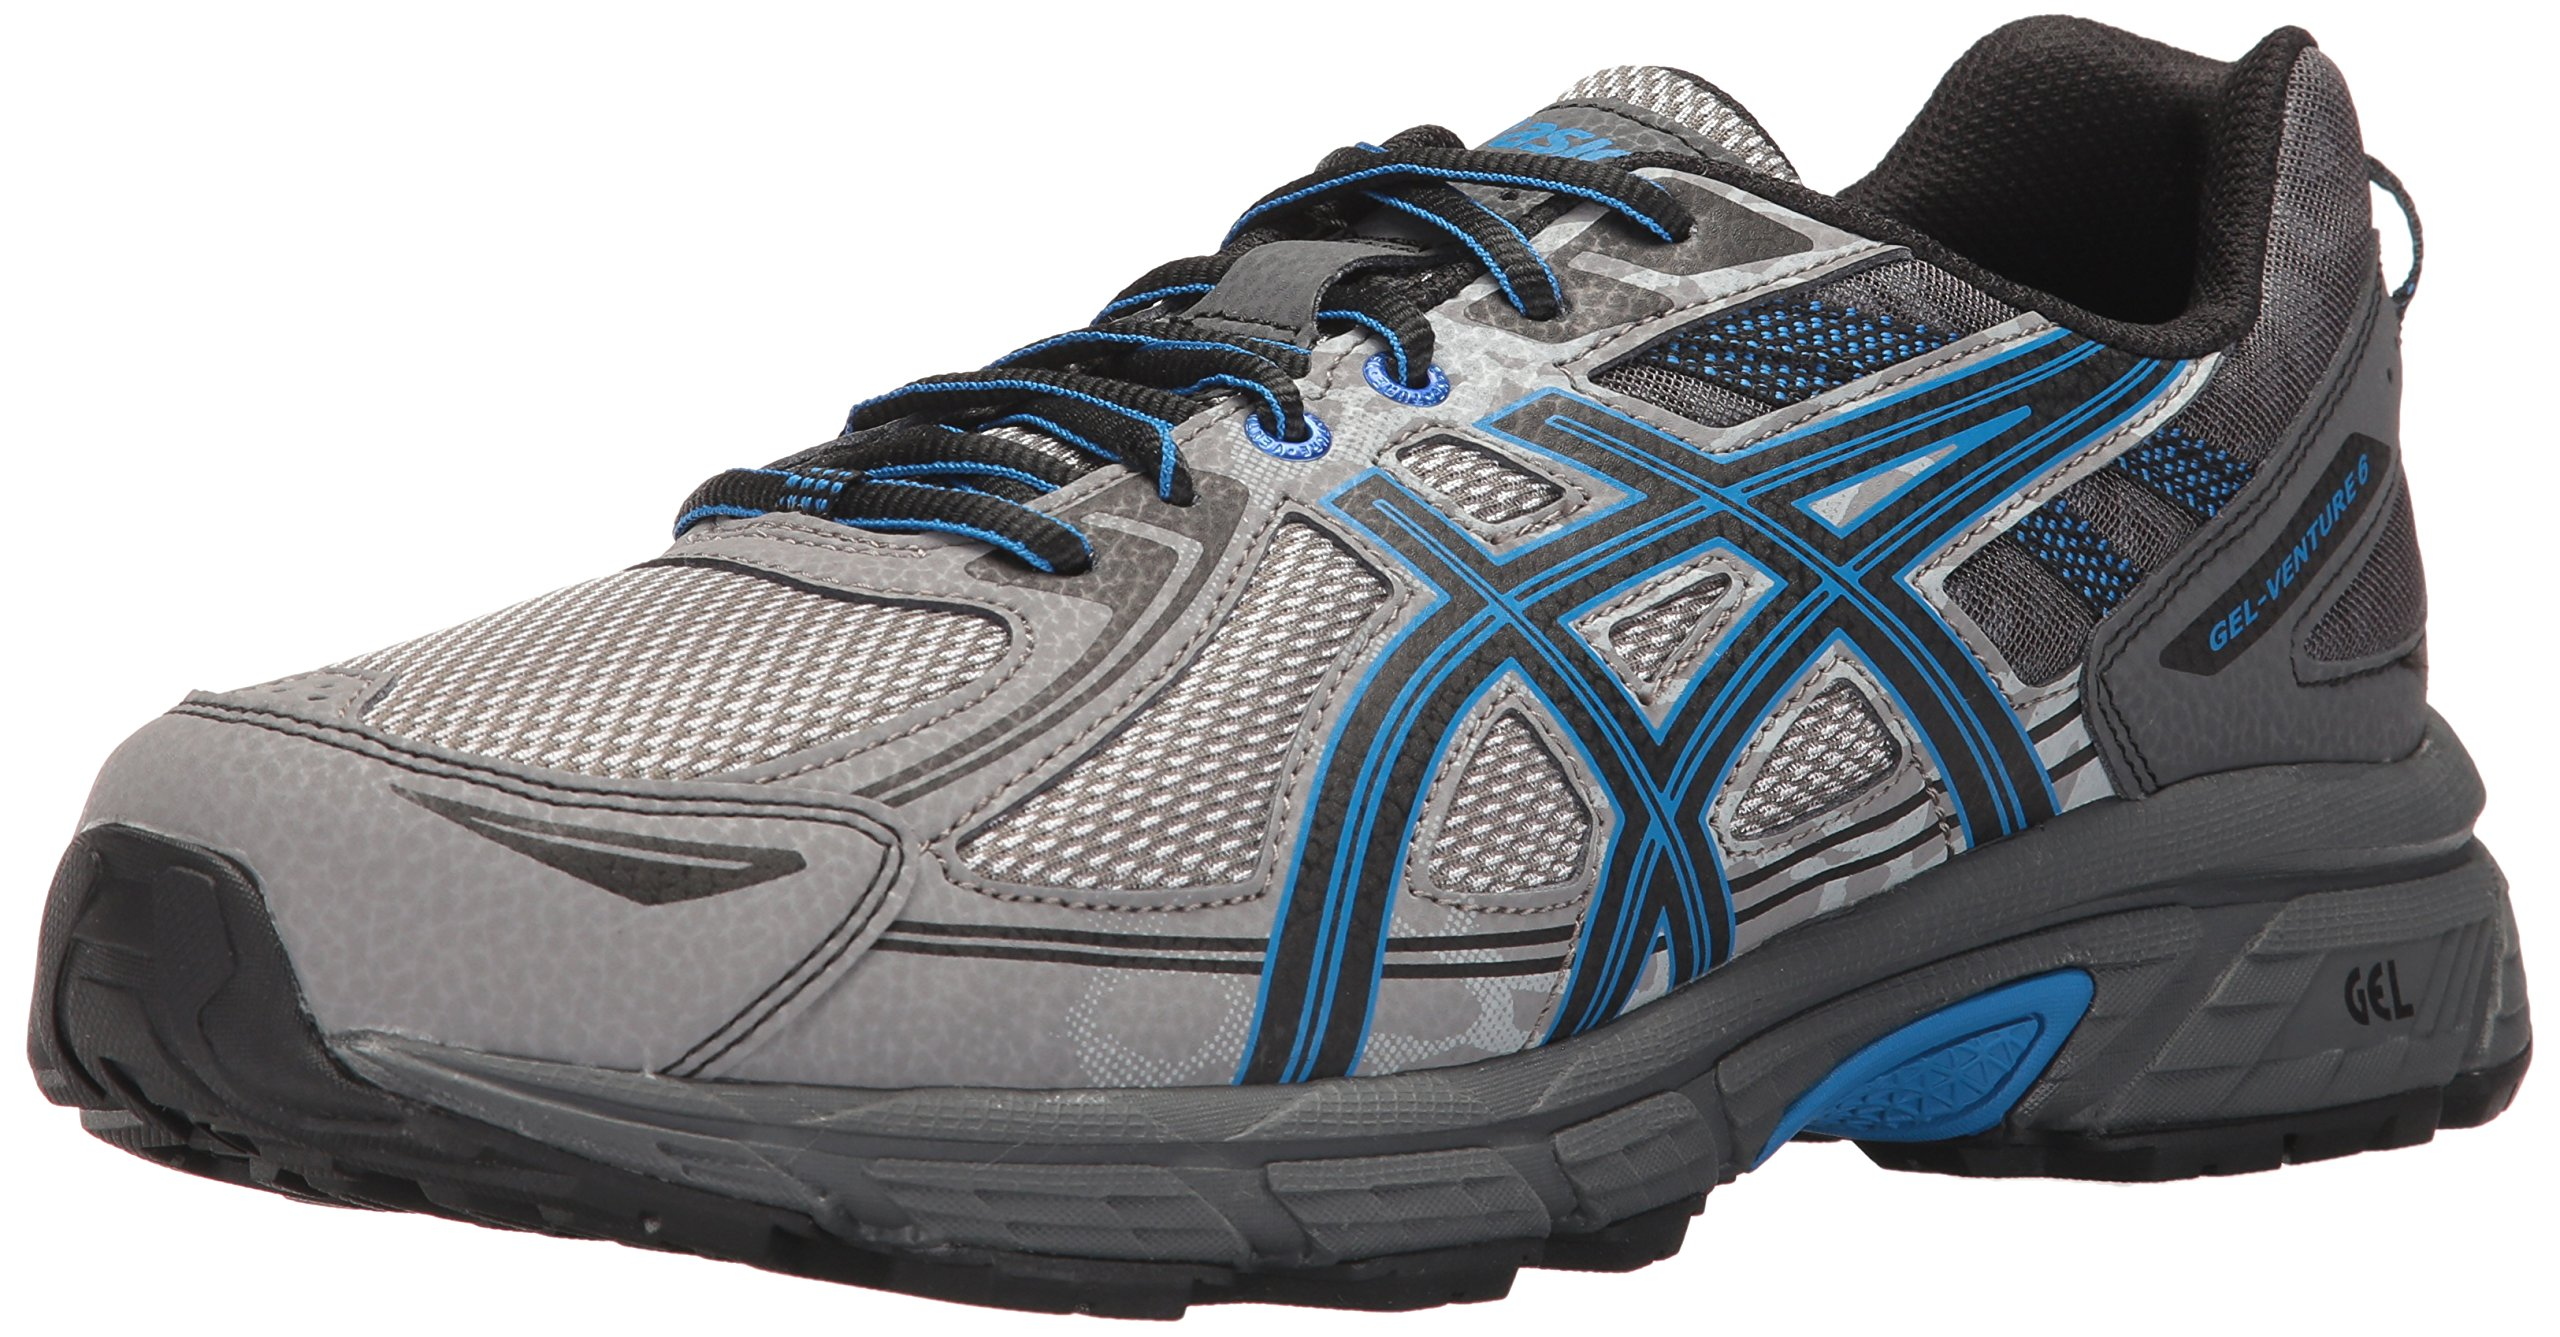 ASICS Mens Gel-Venture 6 Running Shoe, Aluminum/Black/Directoire Blue, 10 D(M) US by ASICS